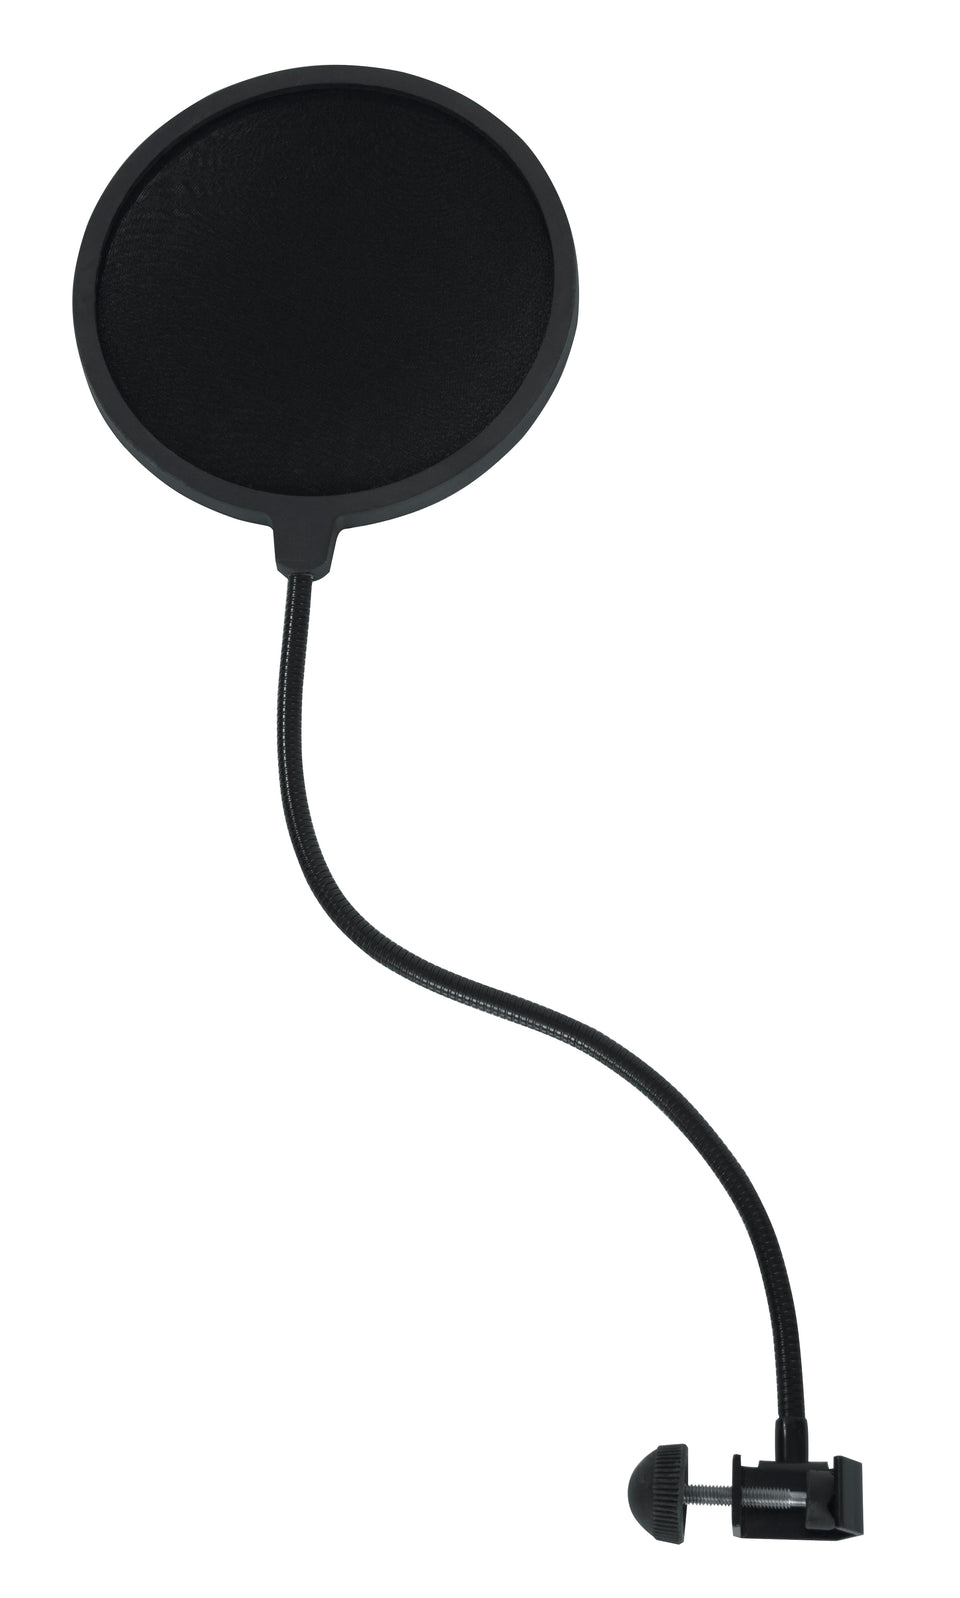 Rok-It Microphone Pop Filter